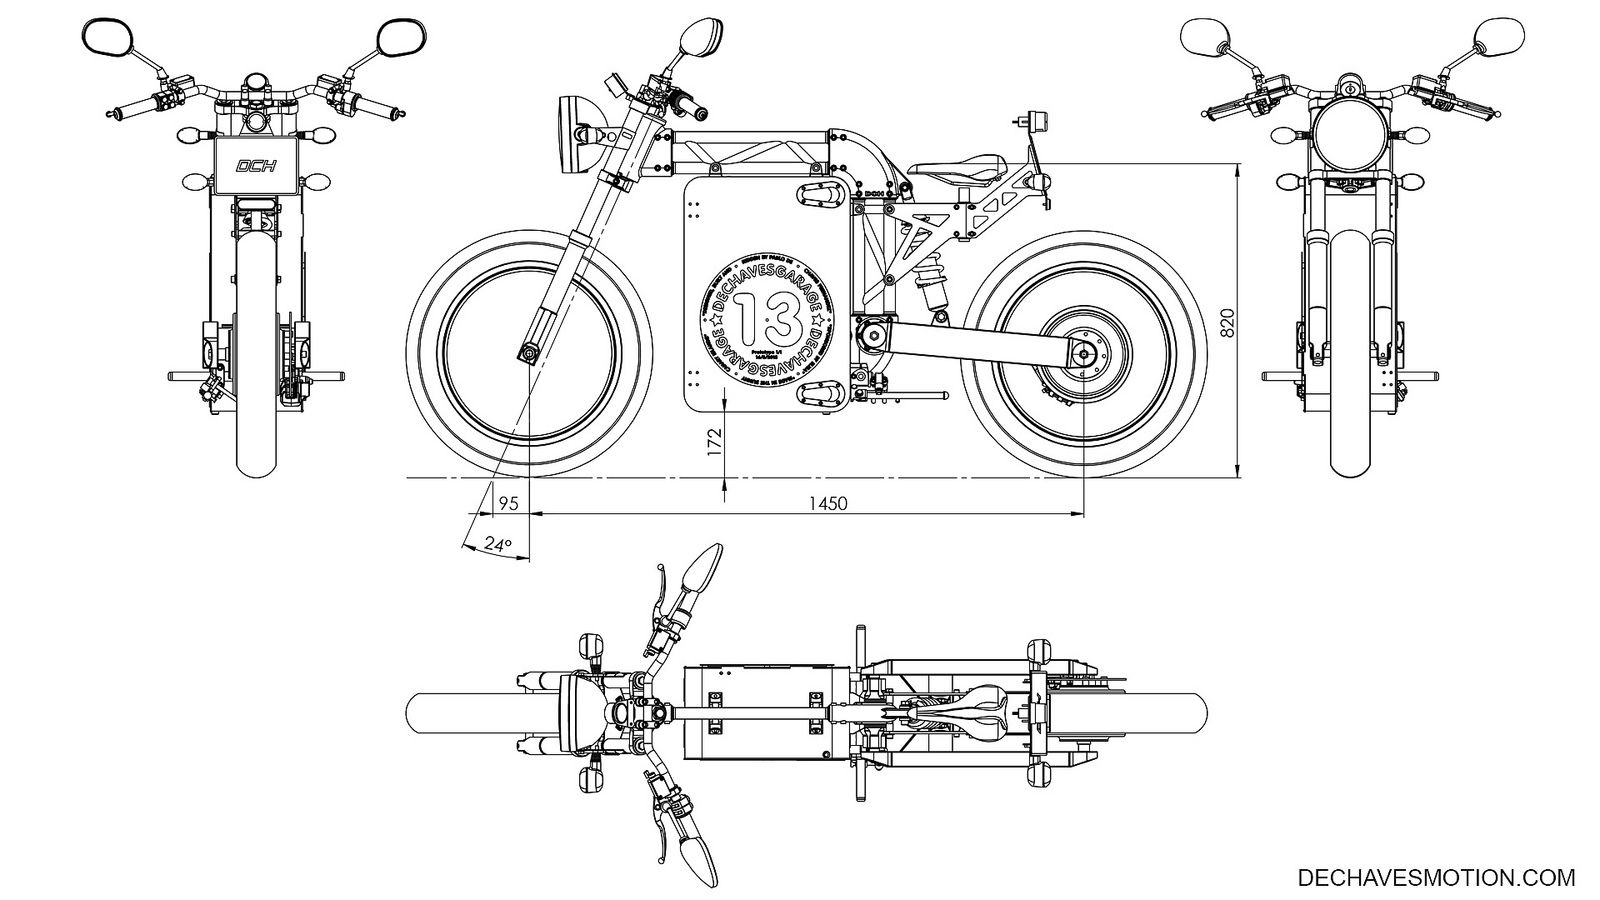 Cad Drawings Evolved From Pencil Sketches